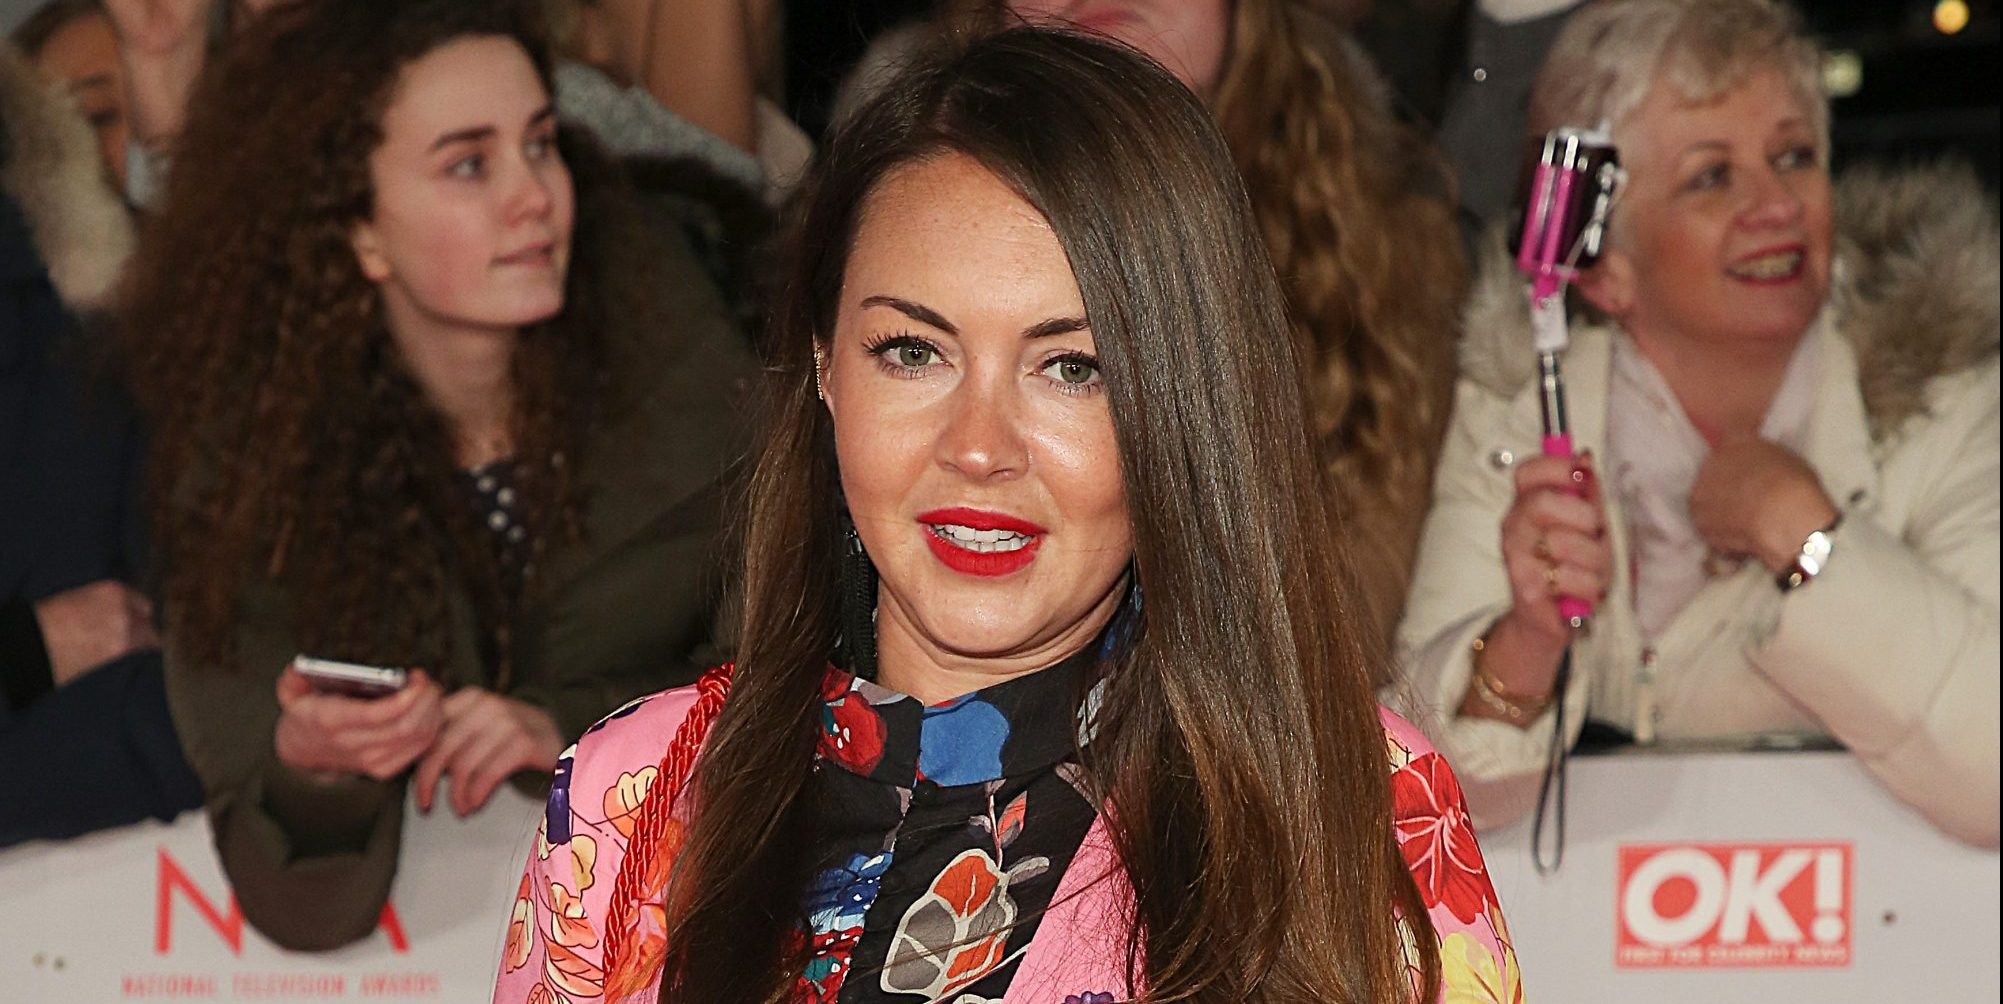 EastEnders' Lacey Turner 'couldn't allow herself to be excited' during pregnancy